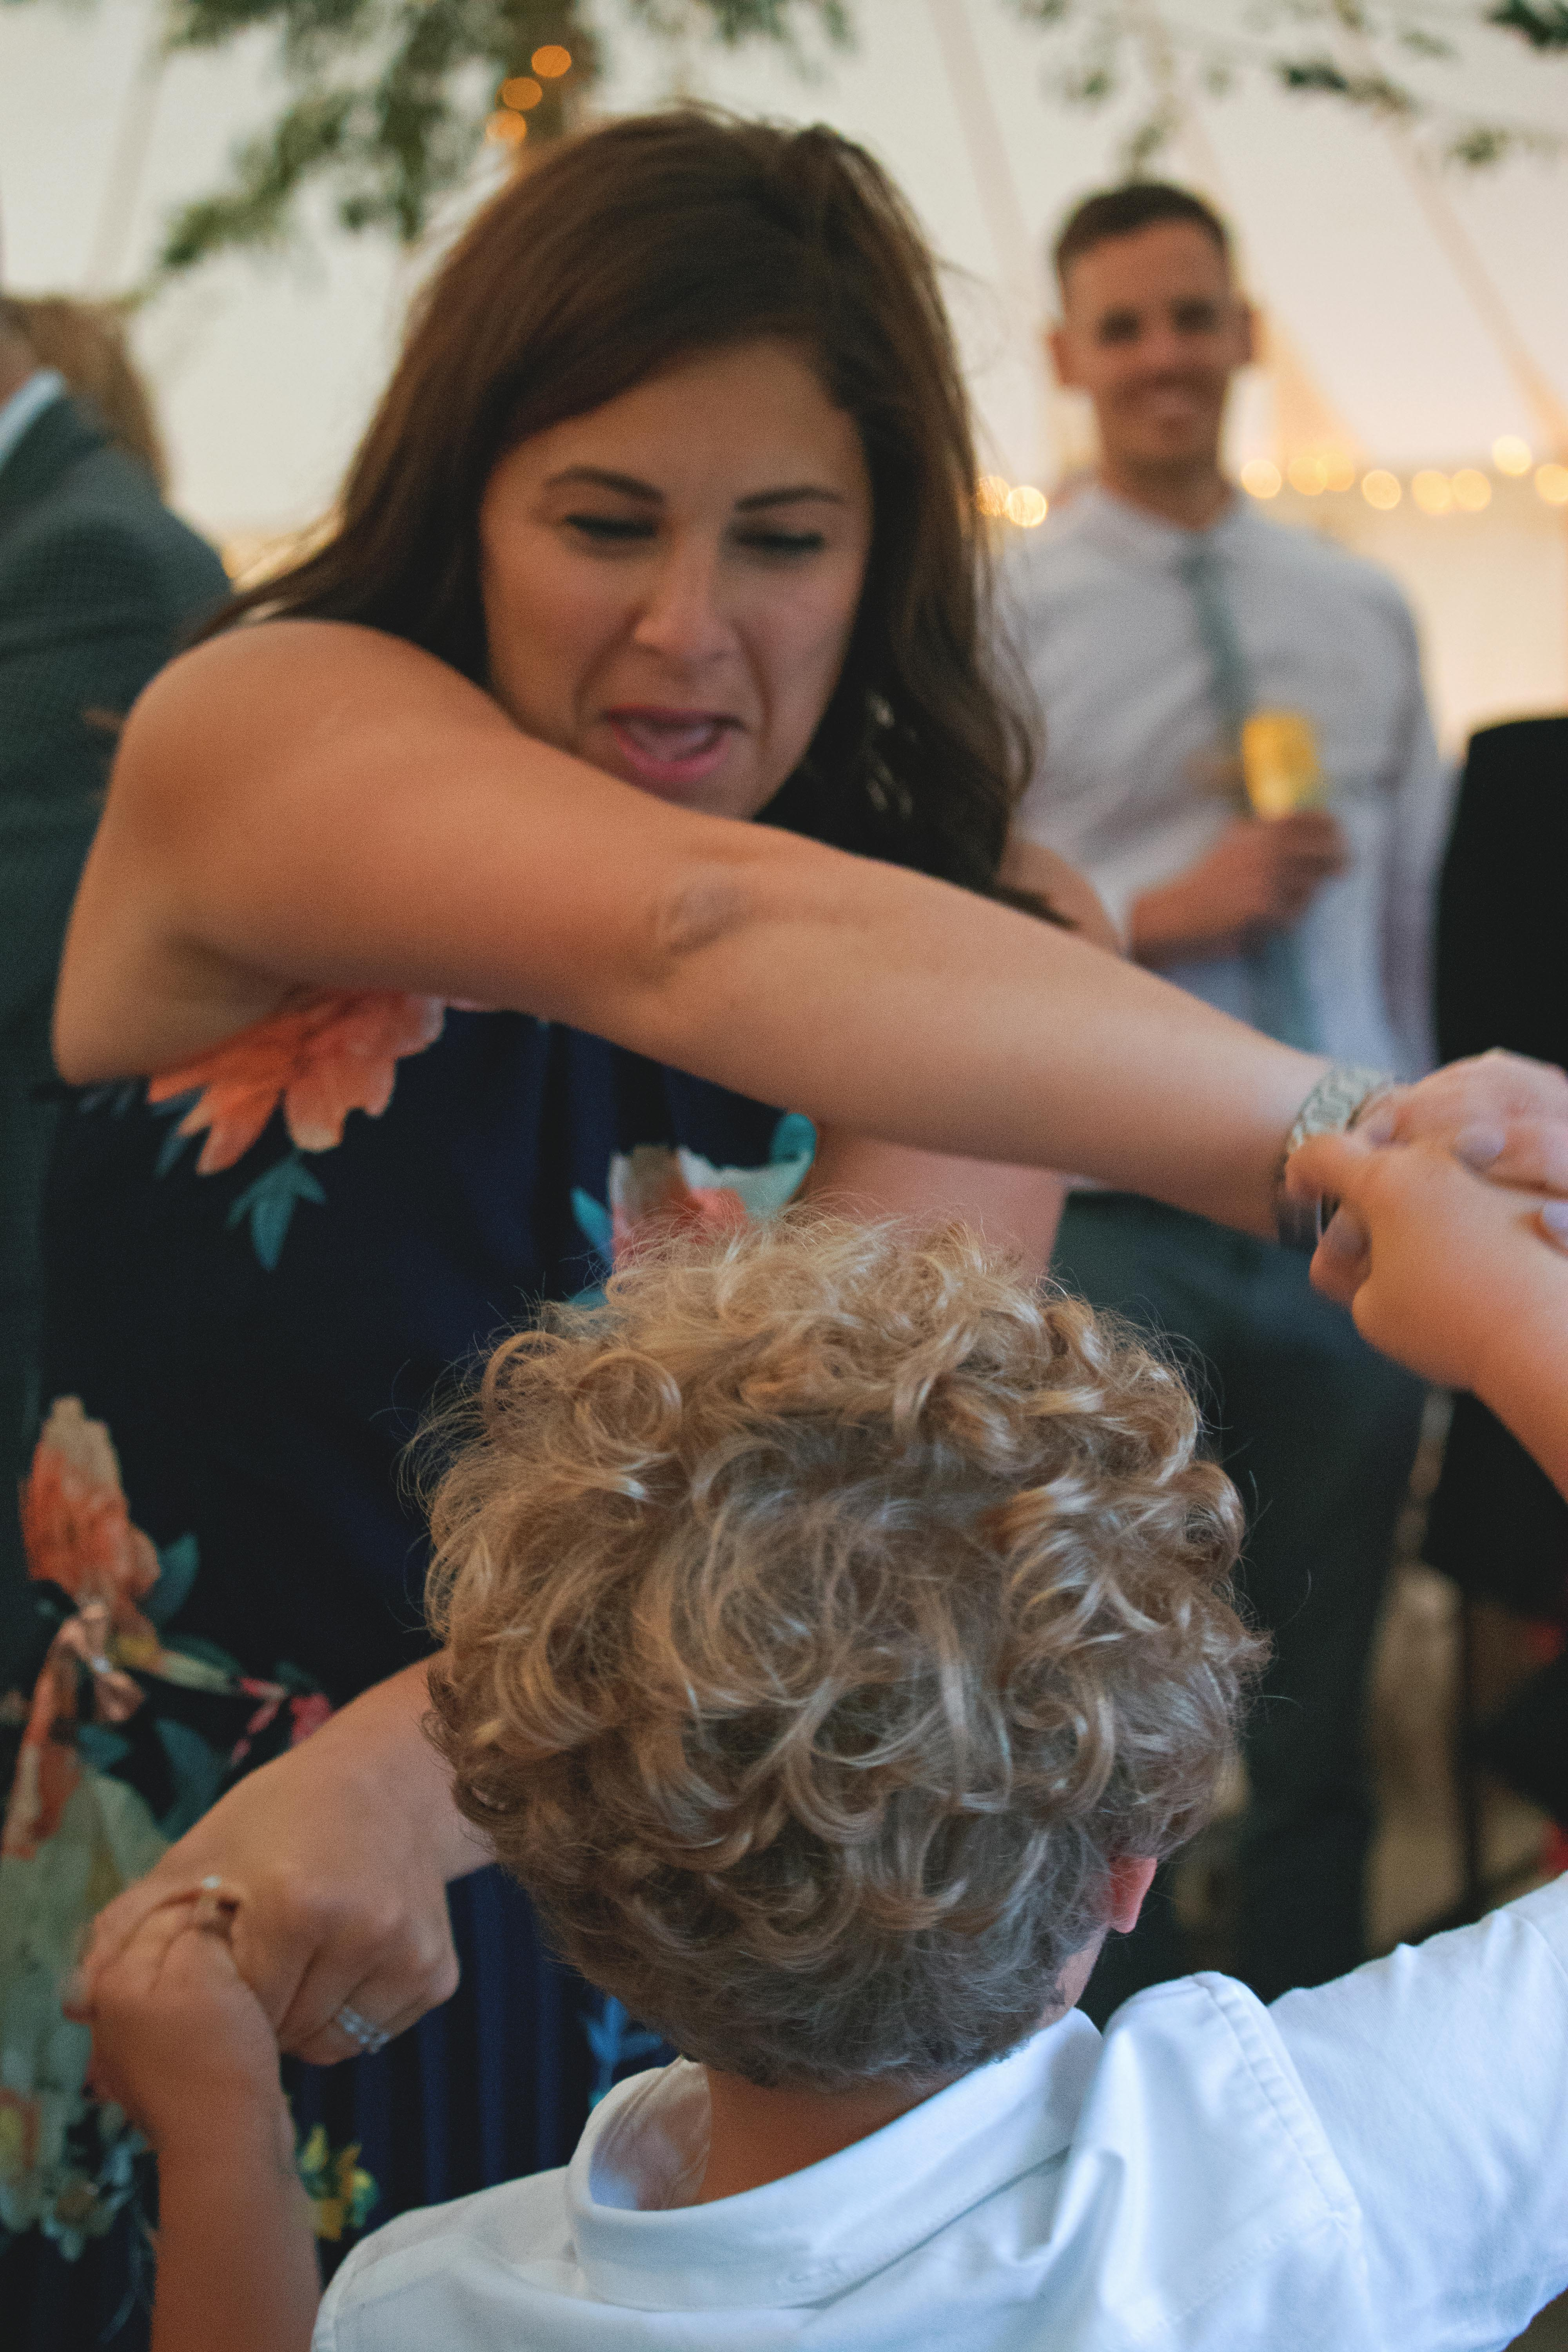 Documentary Mother & Son Dancing Shots